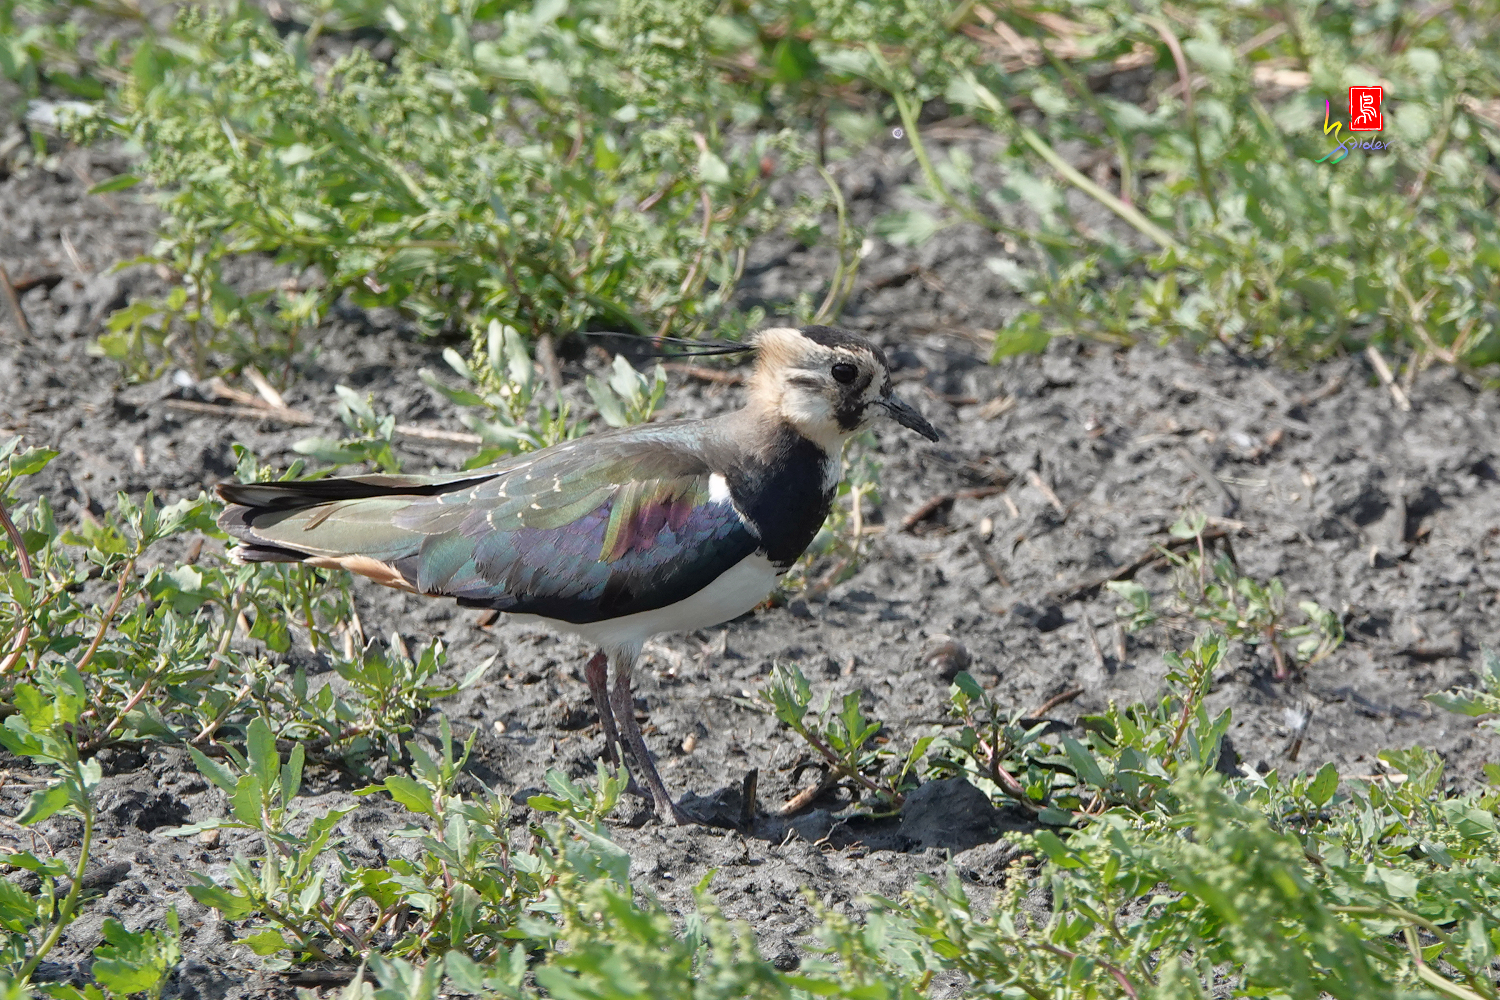 Nprthern_Lapwing08454